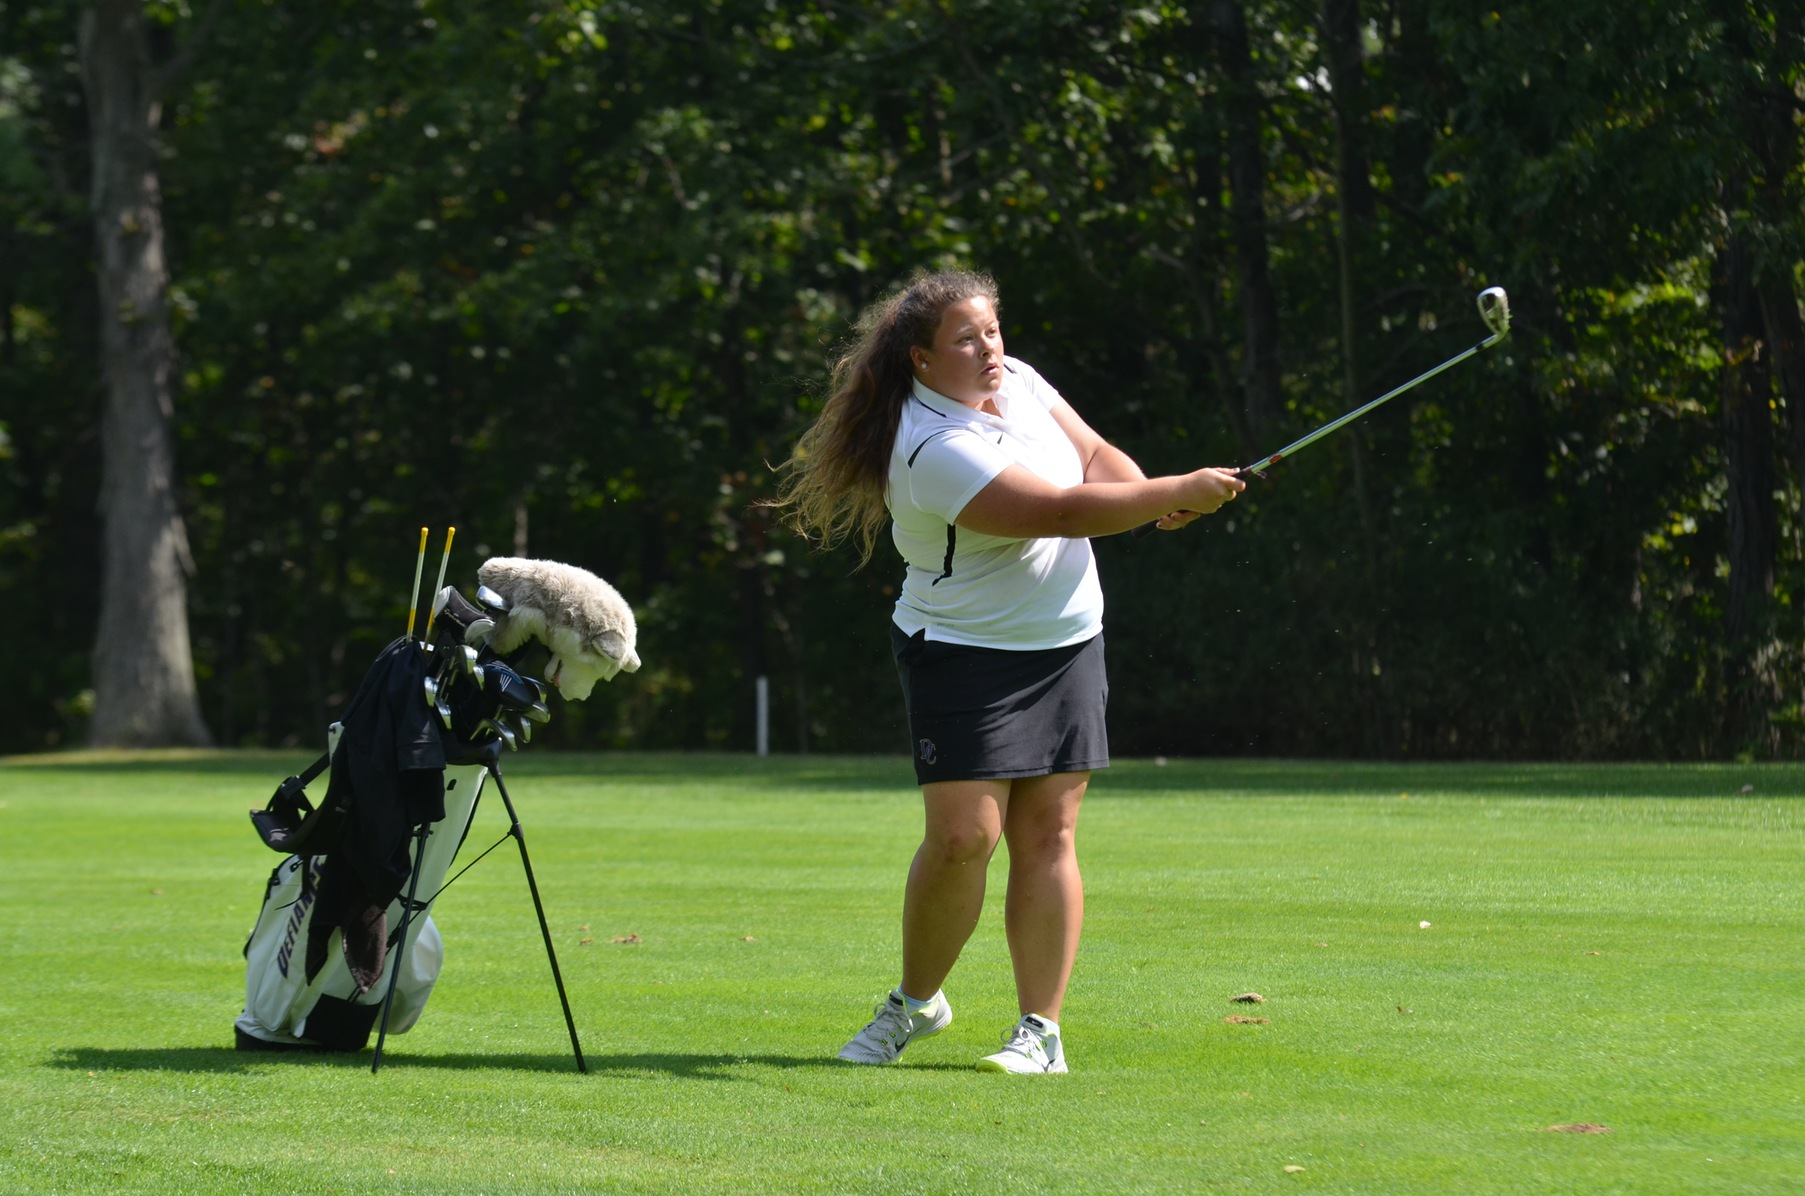 Women's Golf Competes at Earlham College Fall Invitational